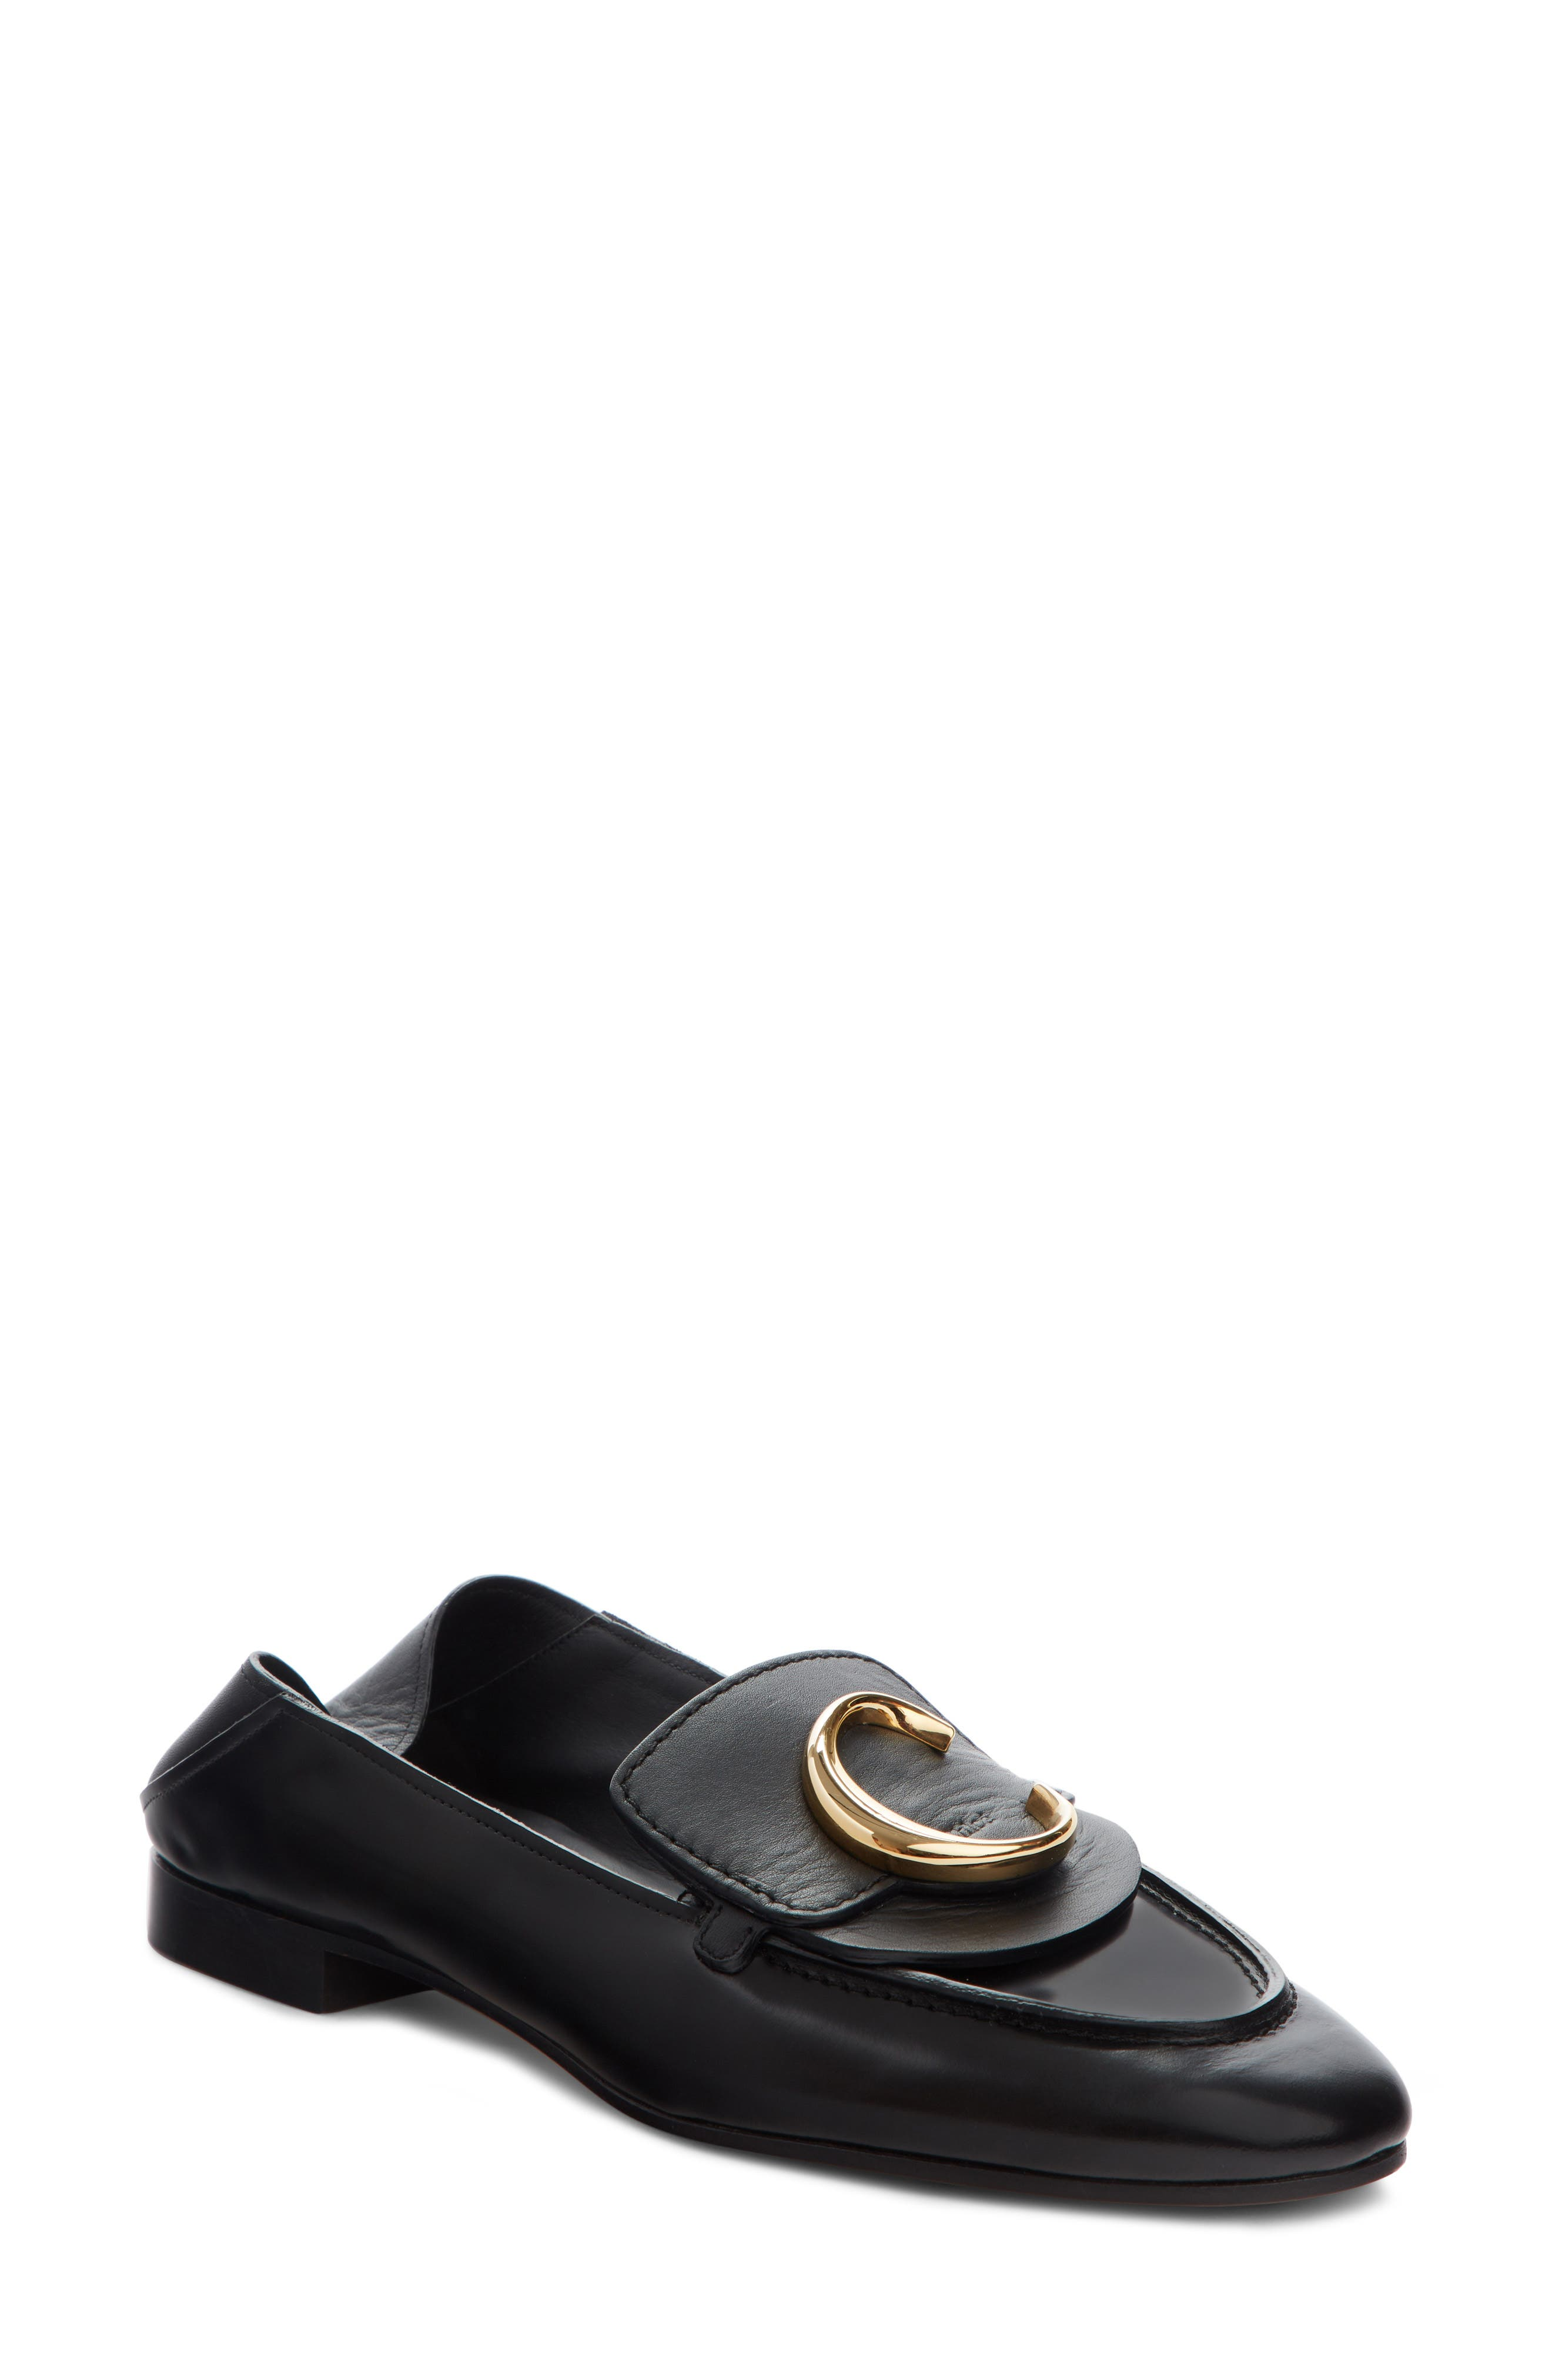 CHLOÉ, Story Convertible Loafer, Main thumbnail 1, color, BLACK LEATHER